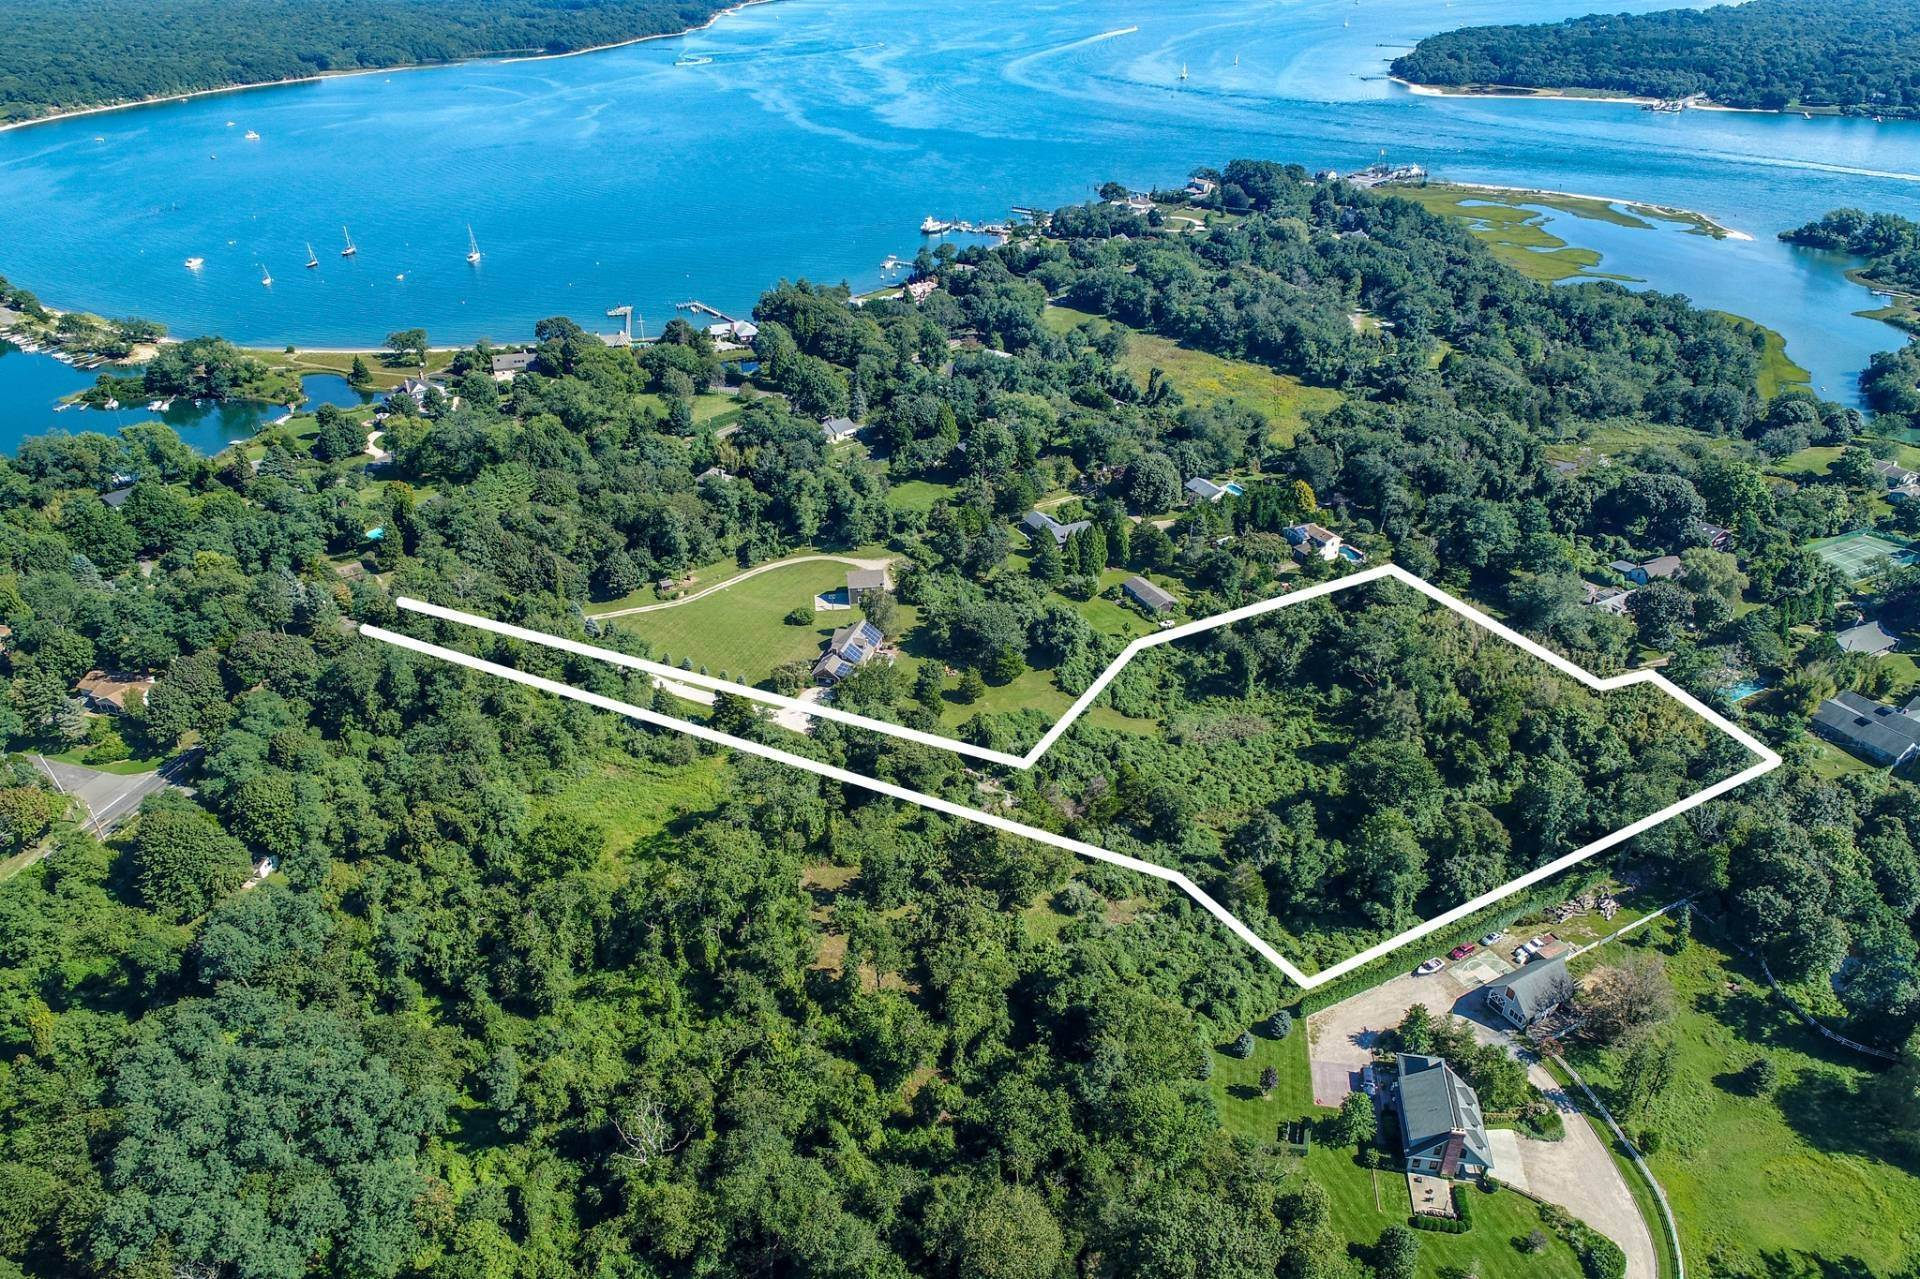 Land for Sale at Shelter Island Acreage Bordering Horse Farm 104 South Ferry Road, NY 11964